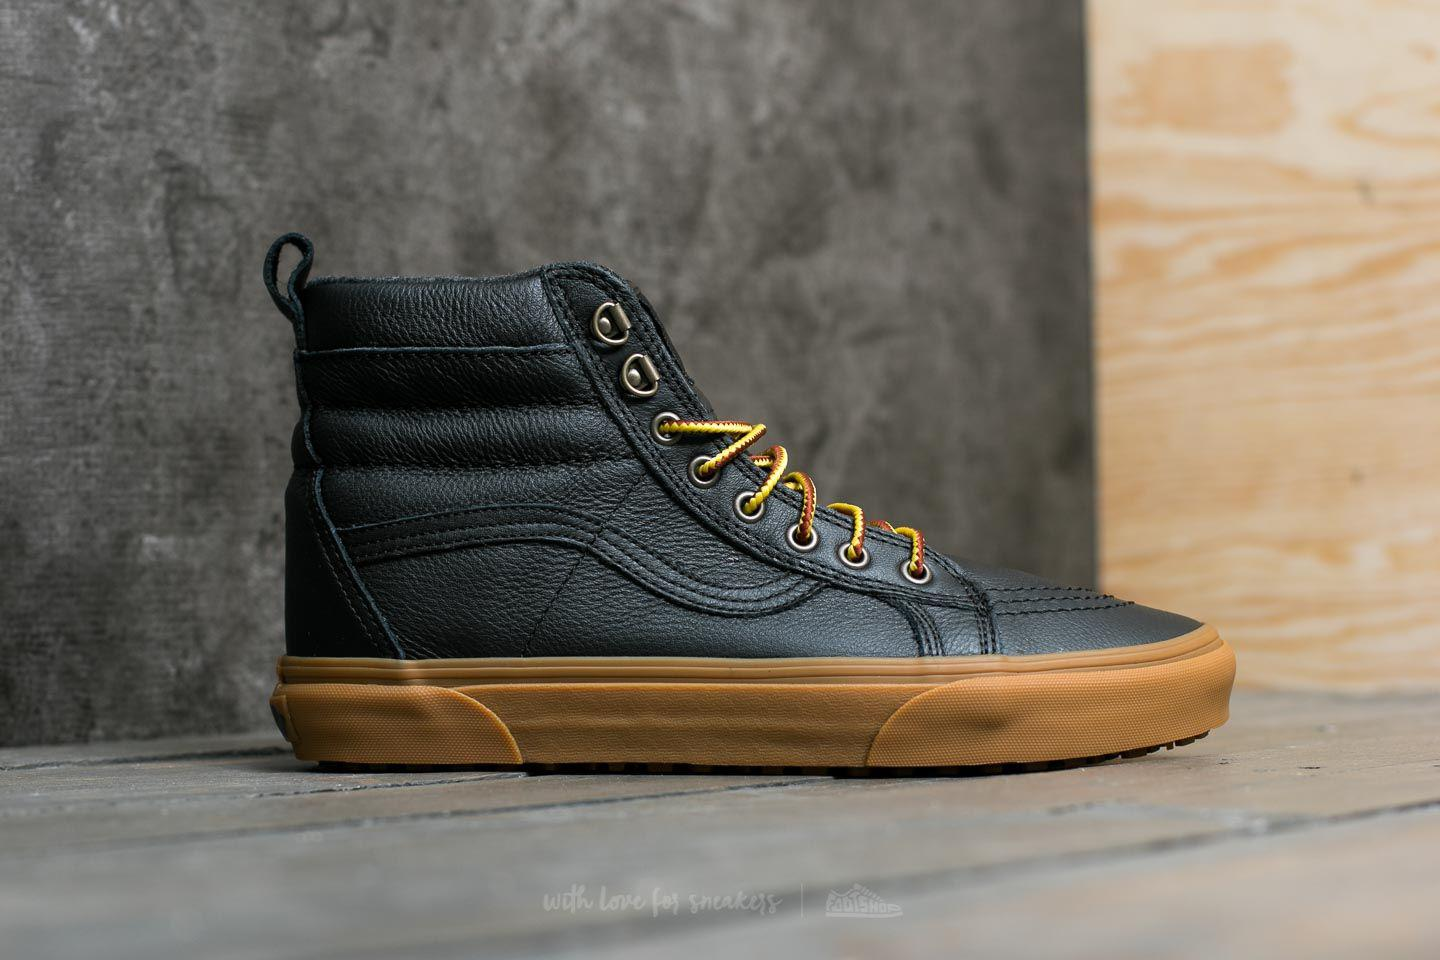 0d45f8686ad8 Lyst - Vans Sk8-hi (mte) Black  Leather  Gum in Black for Men